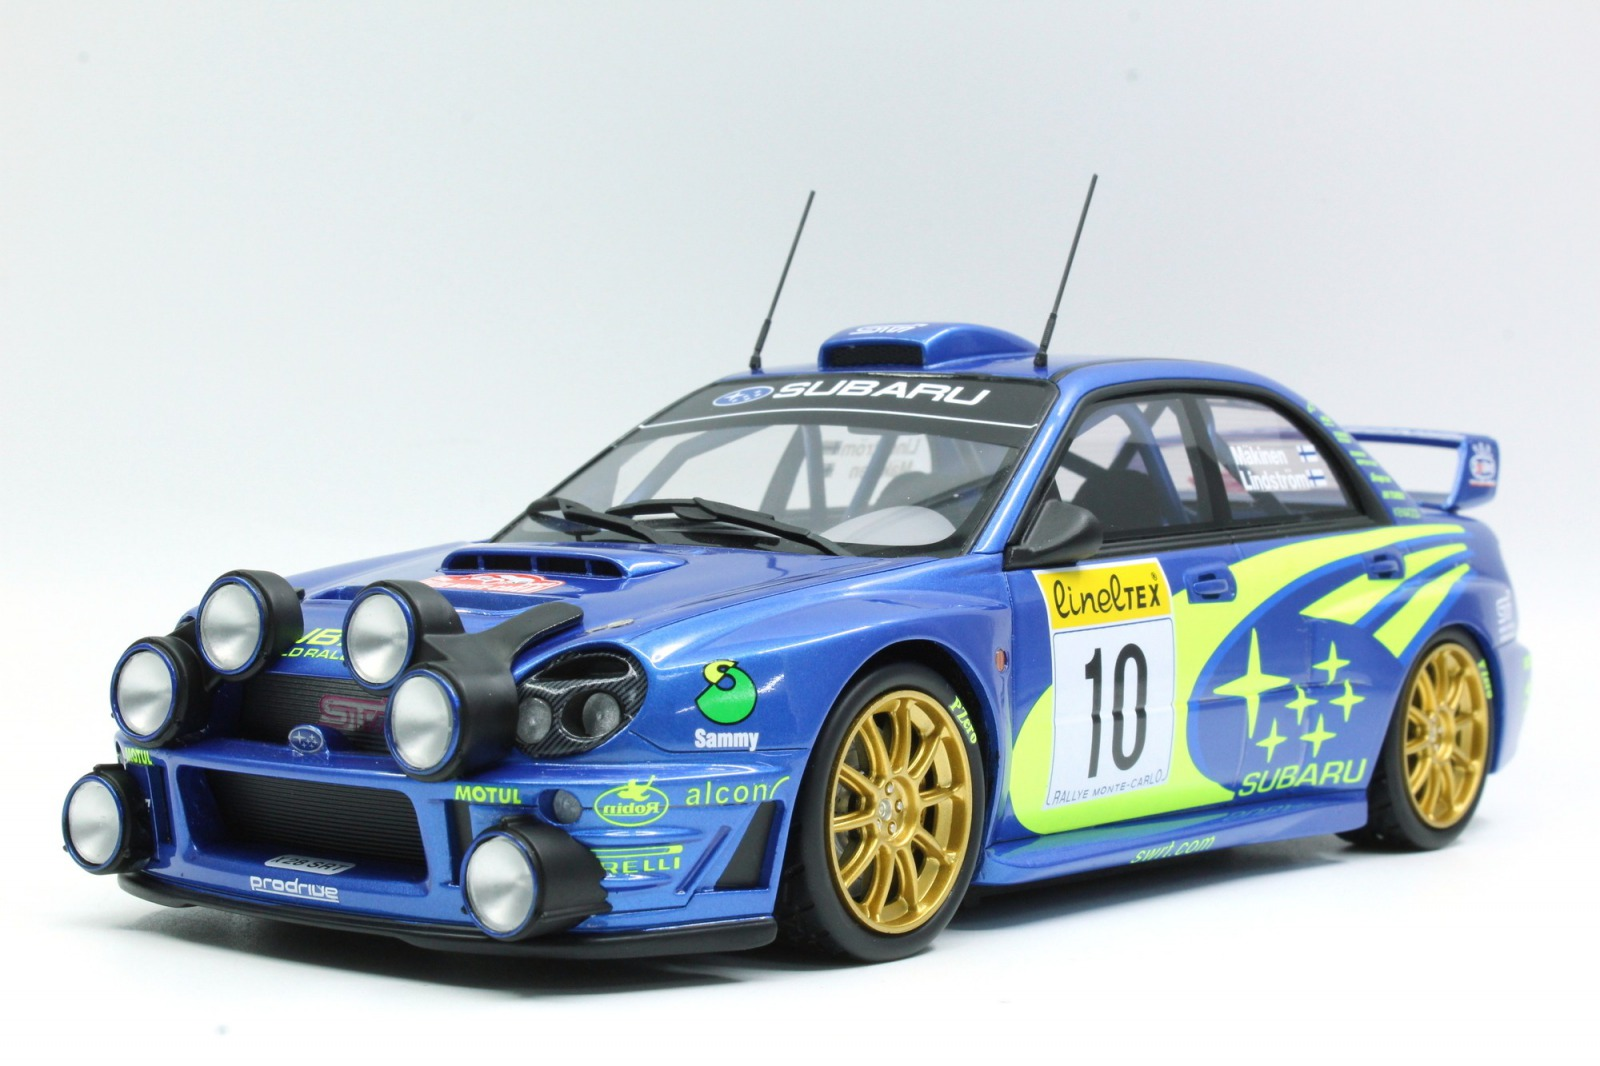 Topmarques トップマルケス 1:18 WRC 2002年ラリーモンテカルロ 優勝モデル スバル インプレッサ S7 555 WRT No.10SUBARU - IMPREZA S4 WRC (night and dirty version) N 10 WINNER RALLY MONTECARLO 2002 T.MAKINEN - K.LINDSTROM 1/18 by Topmarques NEW